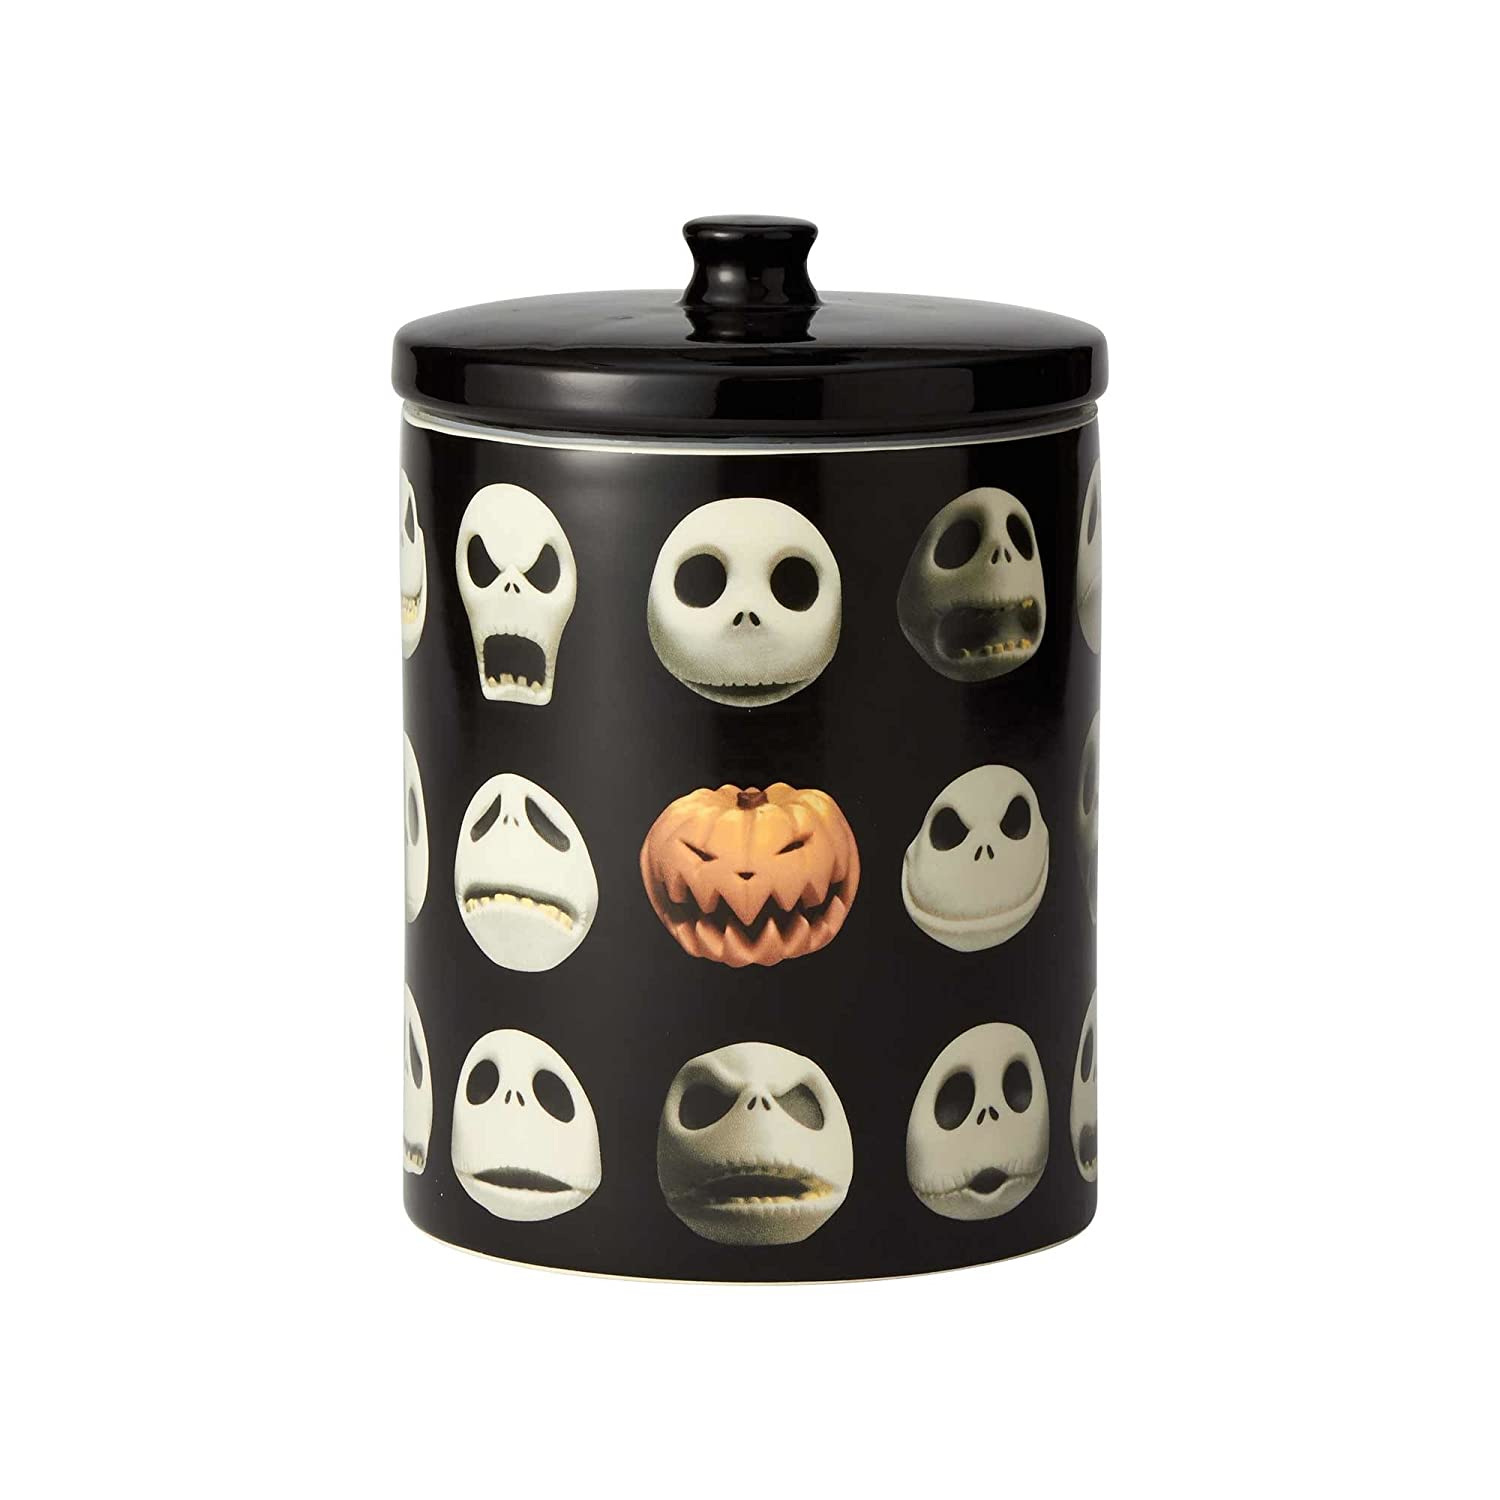 "Enesco 6001019 Disney Ceramics ""Nightmare Before Christmas"" Jack Cookie Jar 9.25 inch Black"